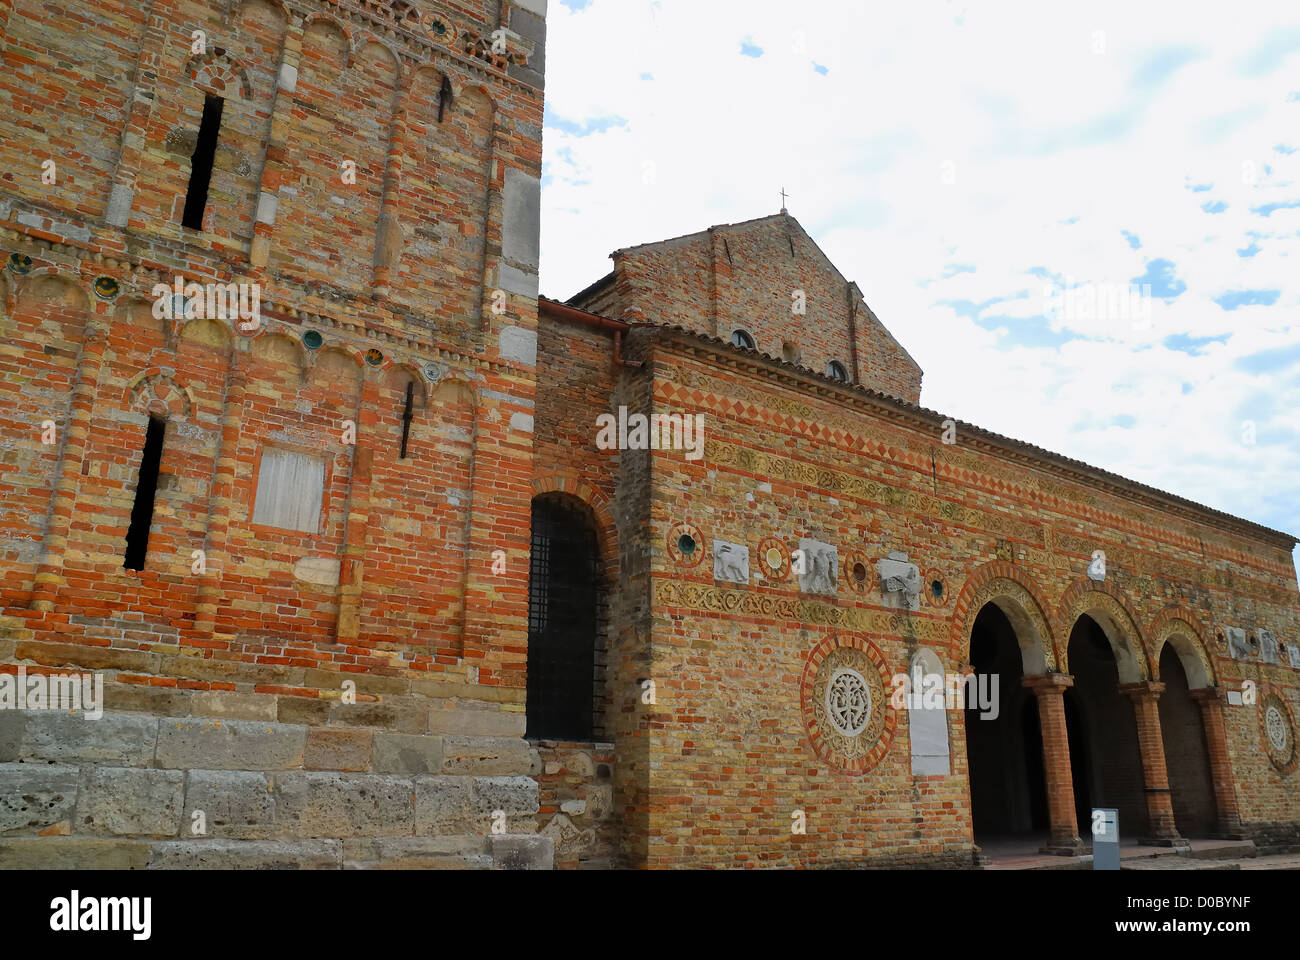 Pomposa Abbey located in the municipality of Codigoro in the province of Ferrara is an abbey dating back to the - Stock Image